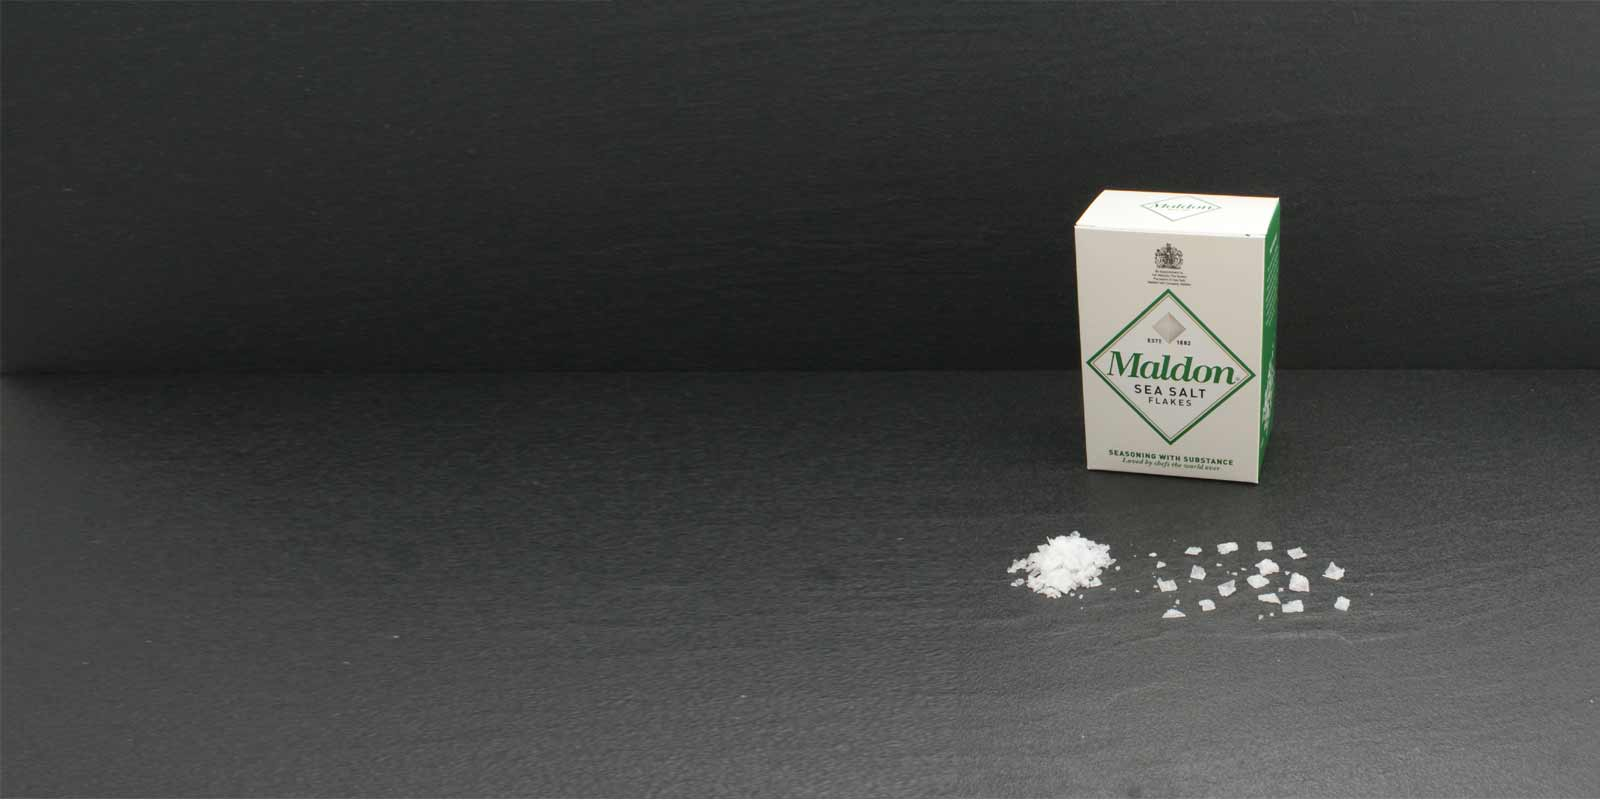 Maldon Sea Salt Flakes crystals The characteristic pyramid-shaped salt crystals are very thin and can be easily used to flavor grind between his fingers. Won is the precious salt from Maldon Sea Salt Company, the only salt production company in England. processed small family and sells the salt since 1882. Maldon Sea Salt is available only in limited quantities.